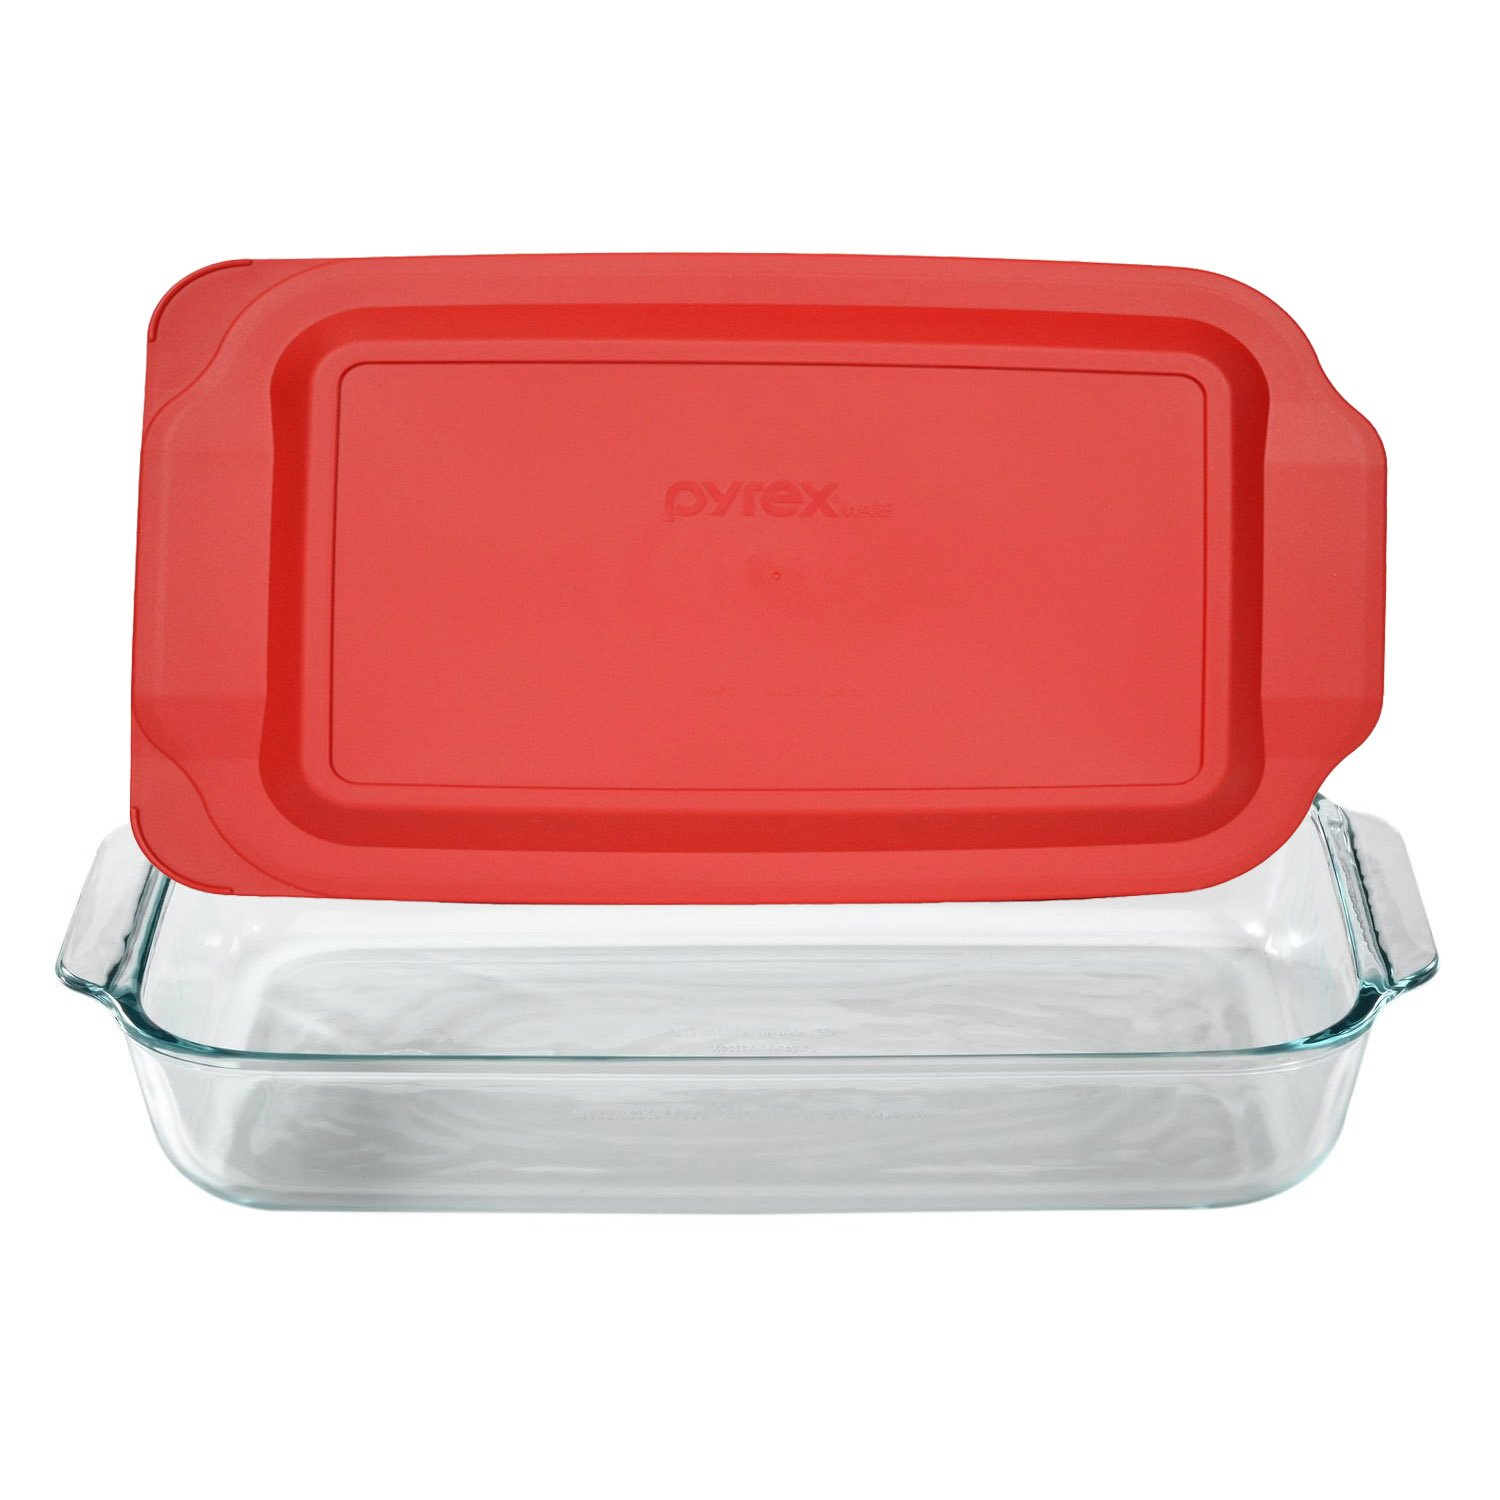 Pyrex Basics 3 Qt 9x13 Glass Baking Dish with Lid